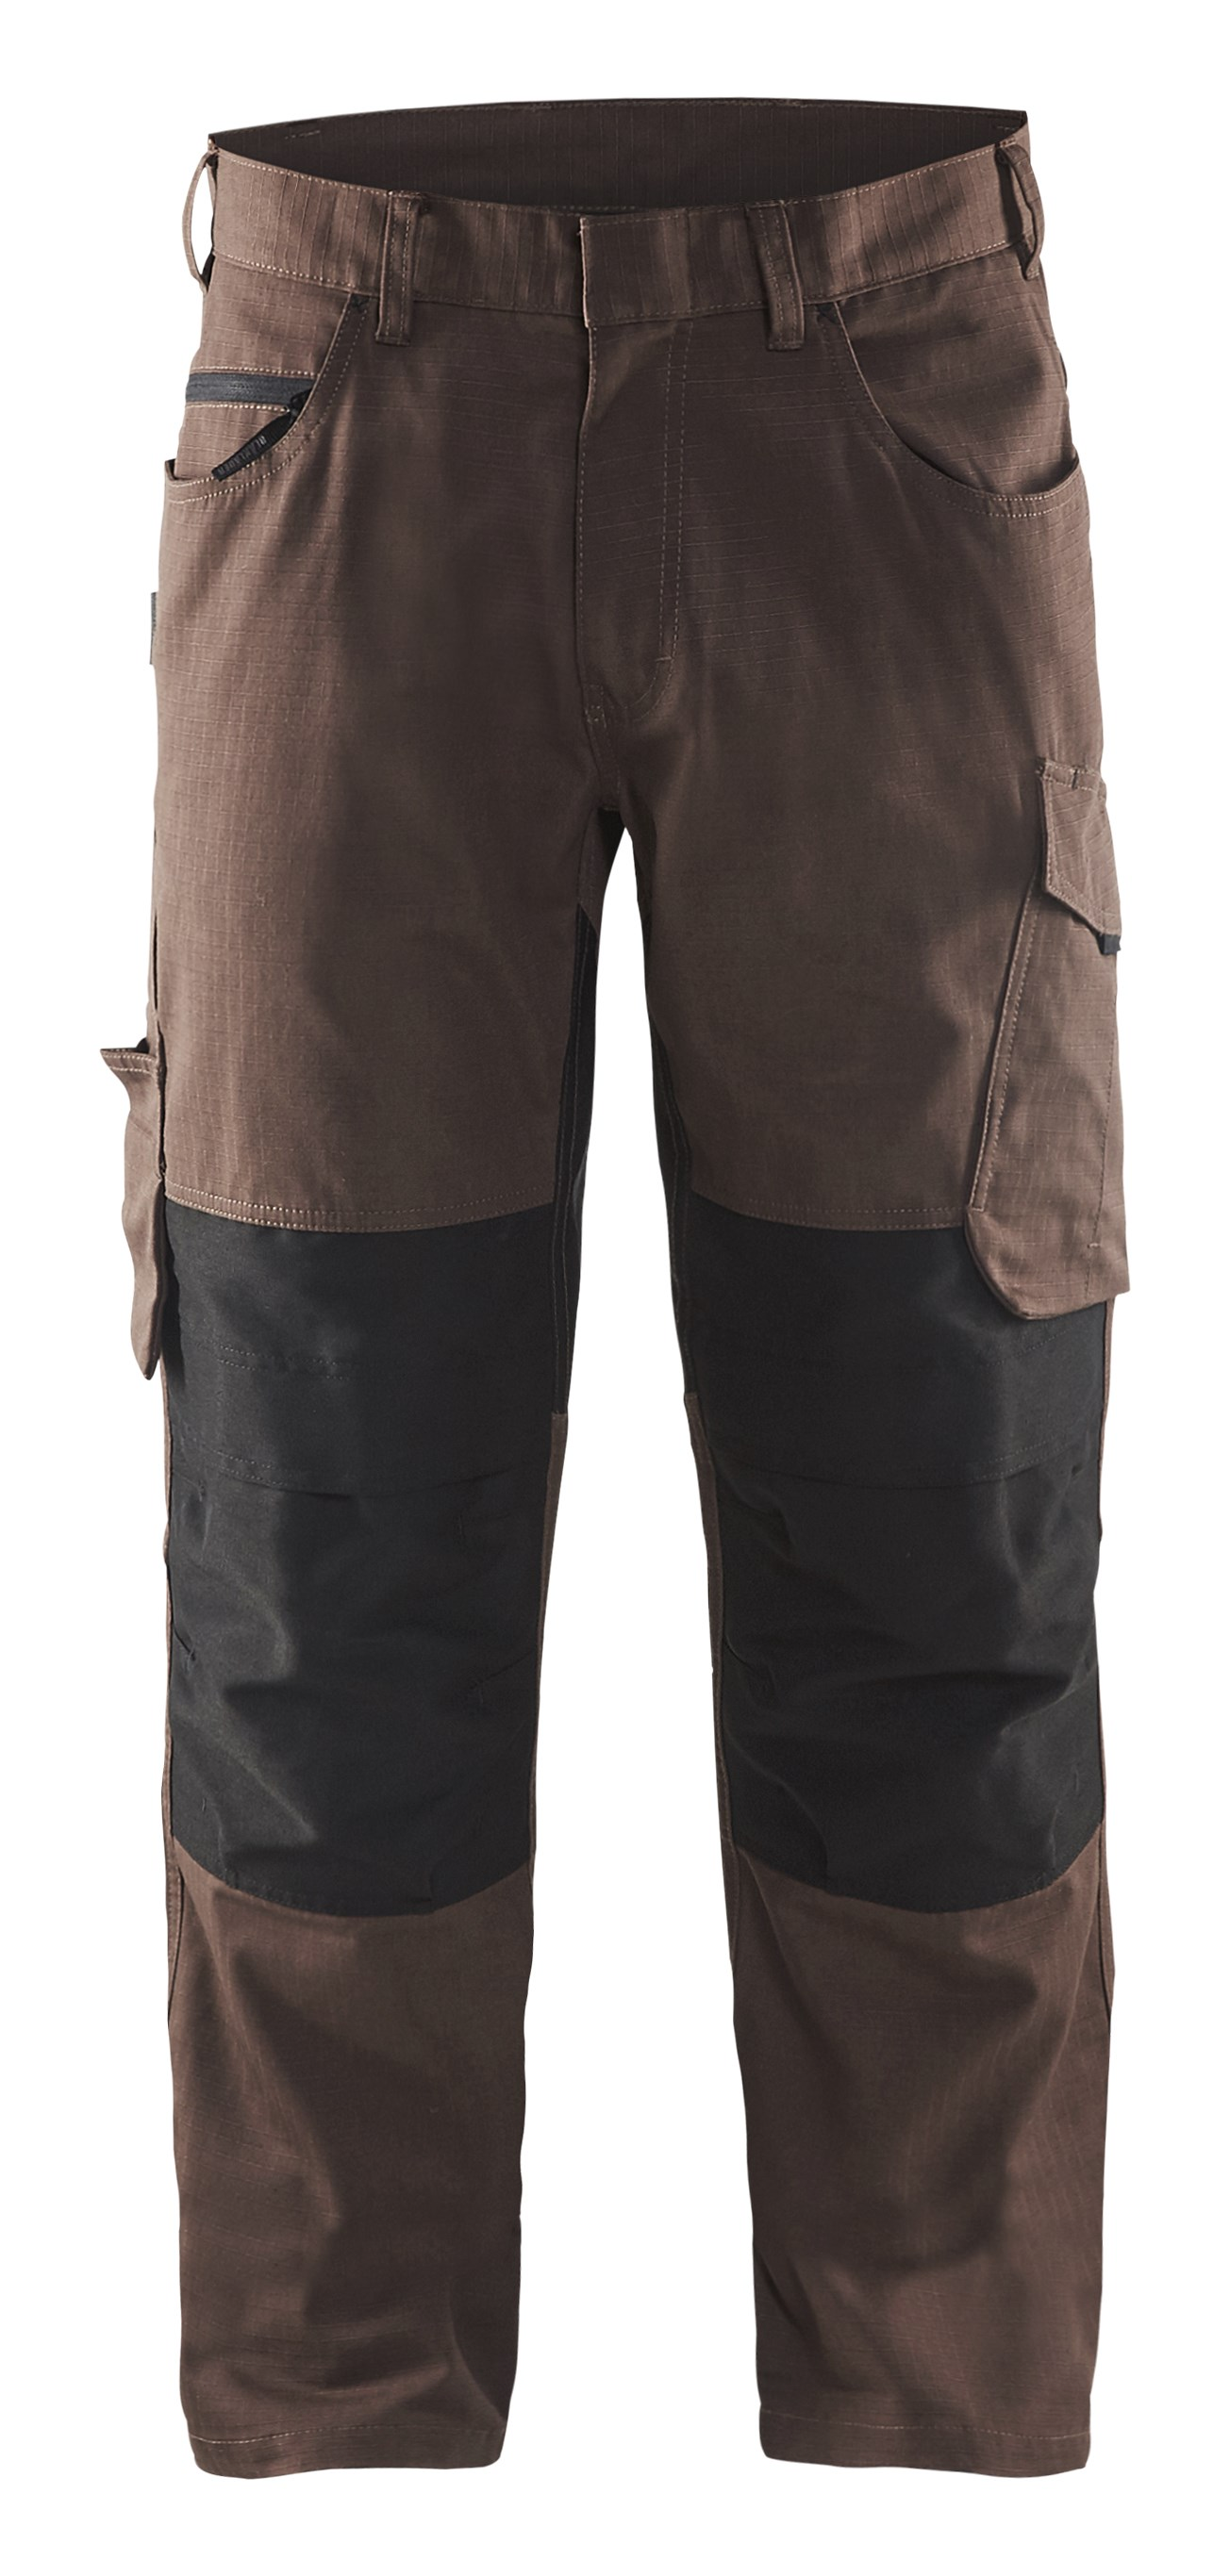 Trouser with knee pocket Unite Brown/Black D112